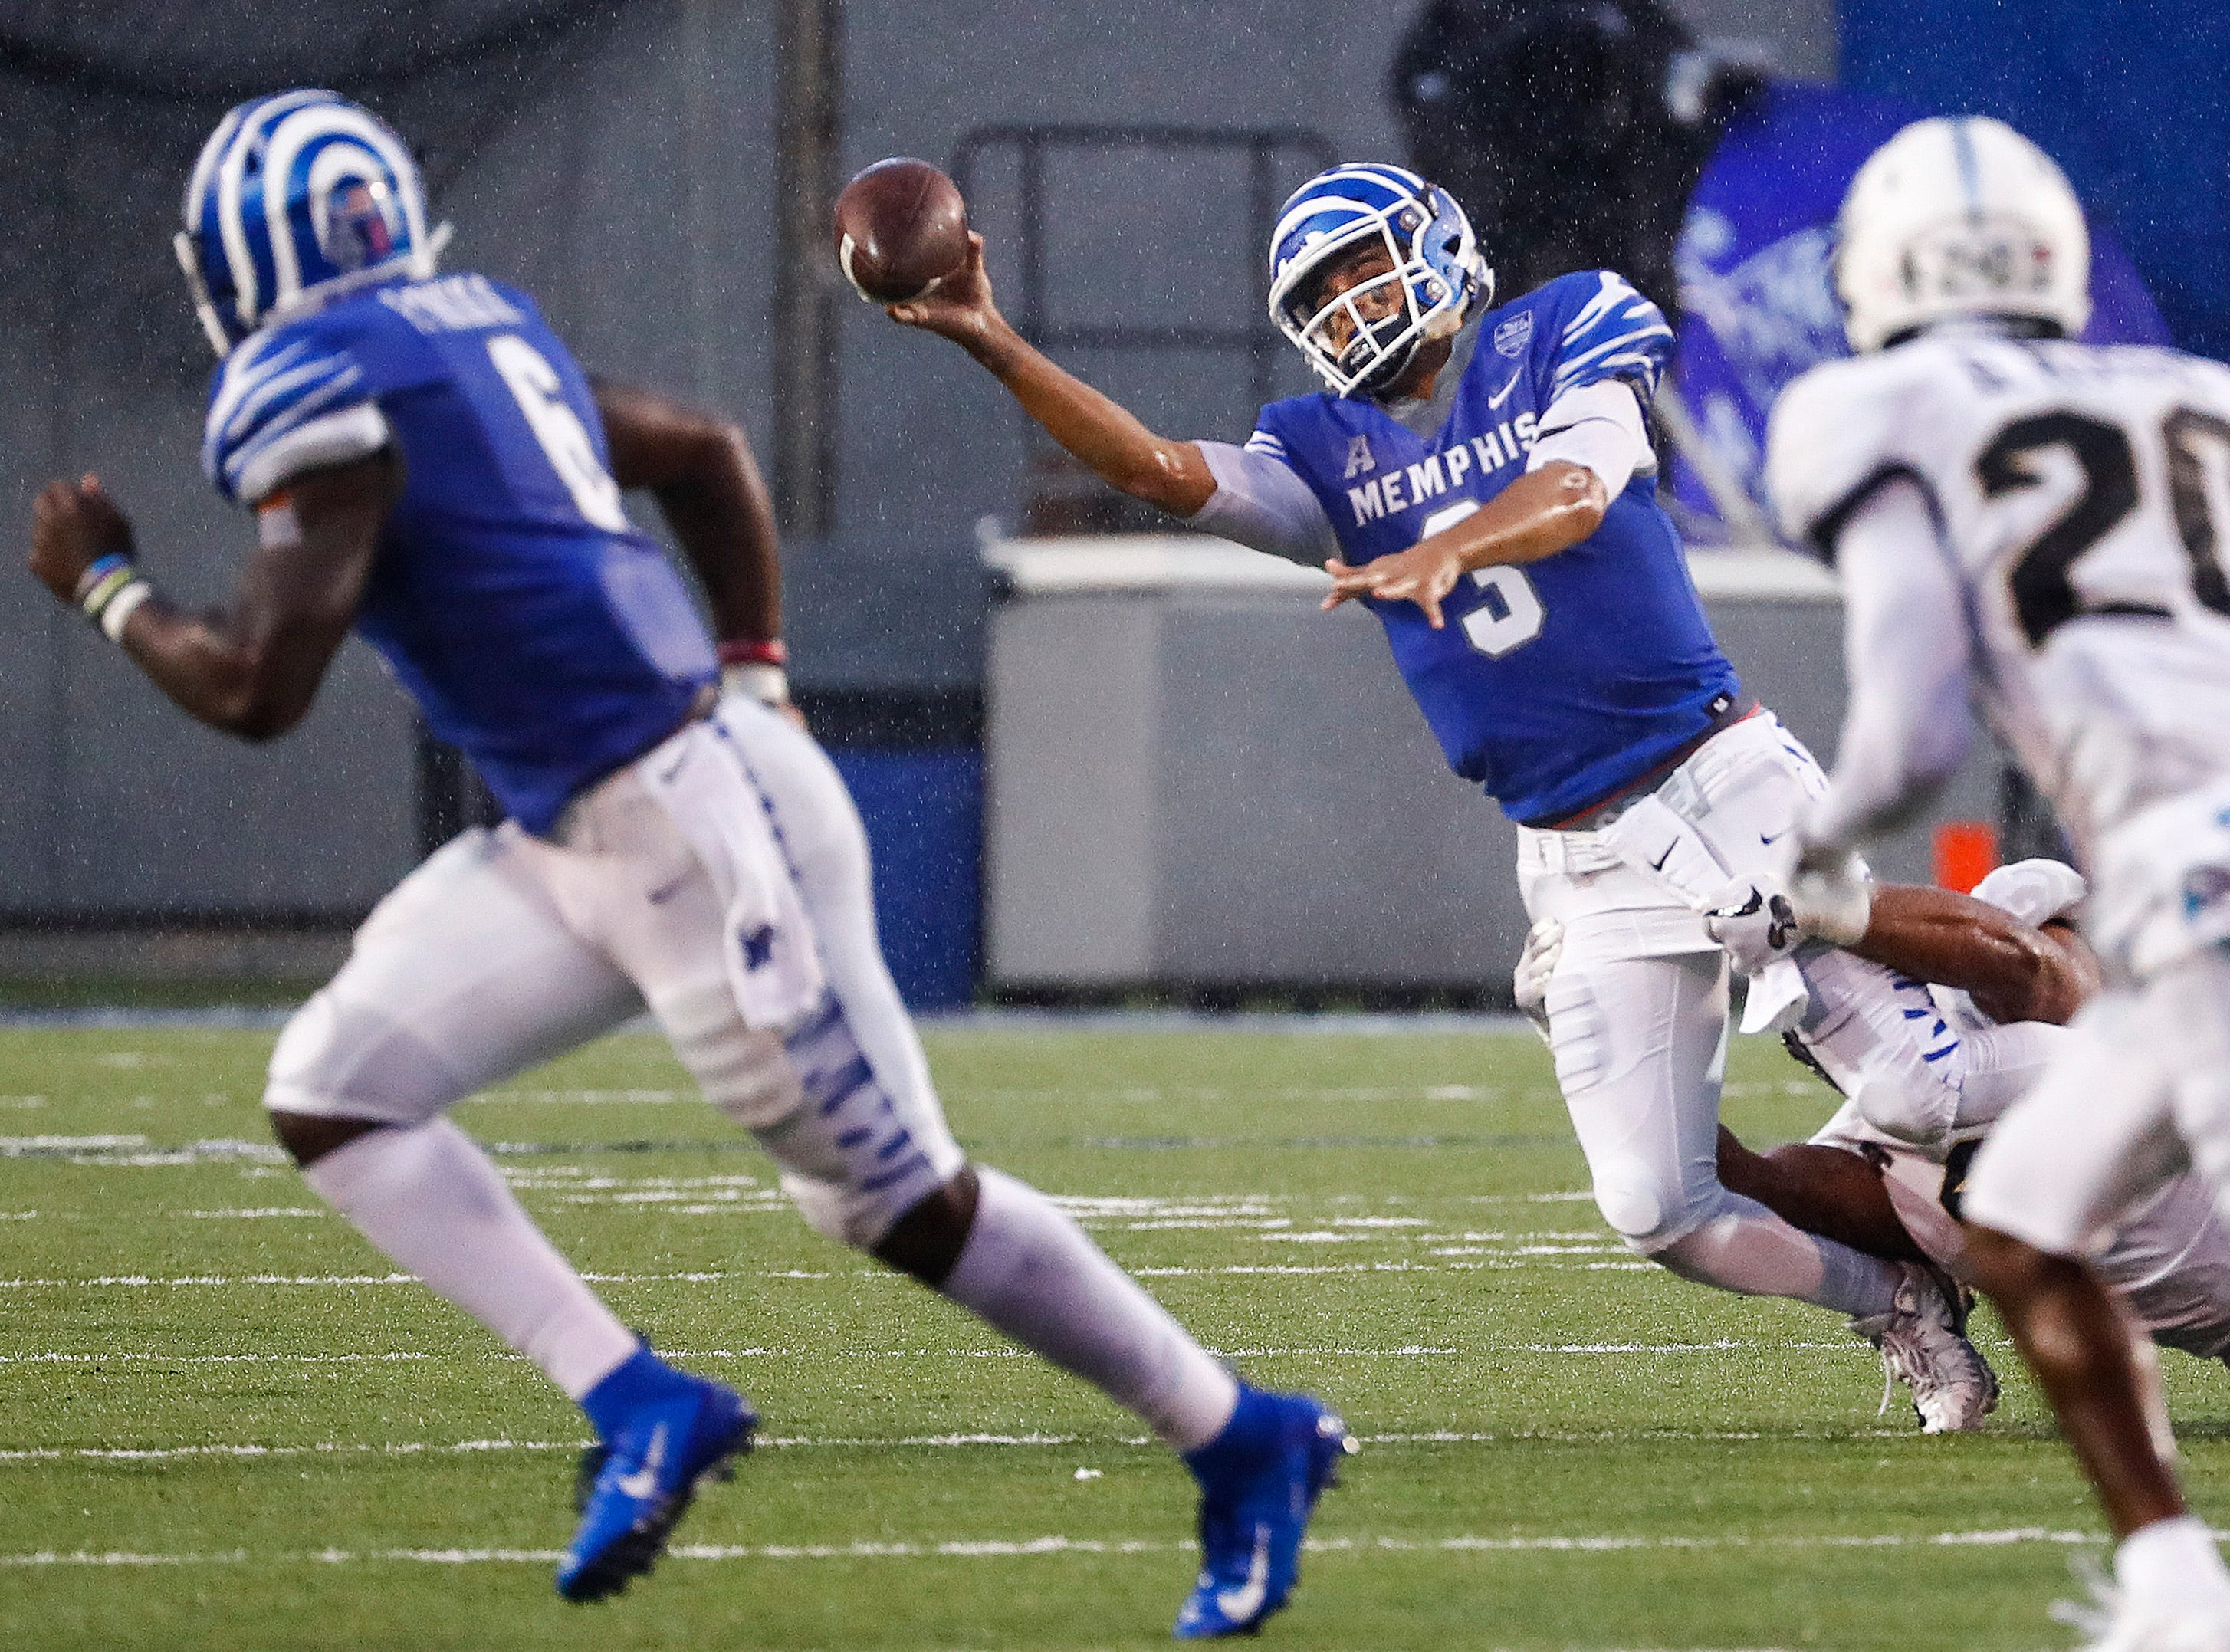 Memphis quarterback Brady White (middle) makes a throw before being sacked by Central Florida during action in Memphis, Tenn., Saturday, October 13, 2018.